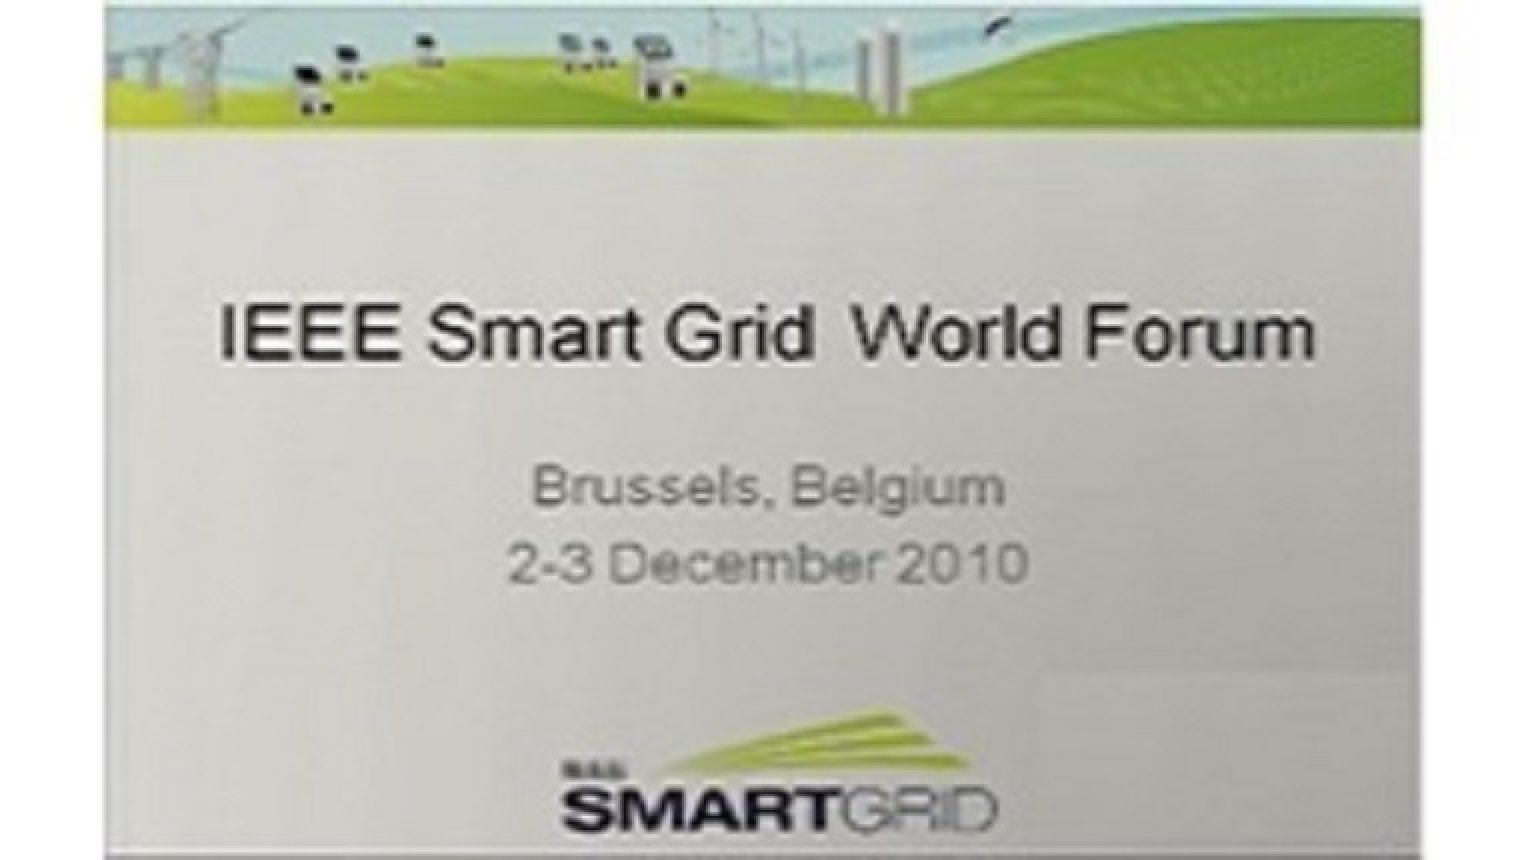 IEEE Smart Grid World Forum - Laurent Schmitt